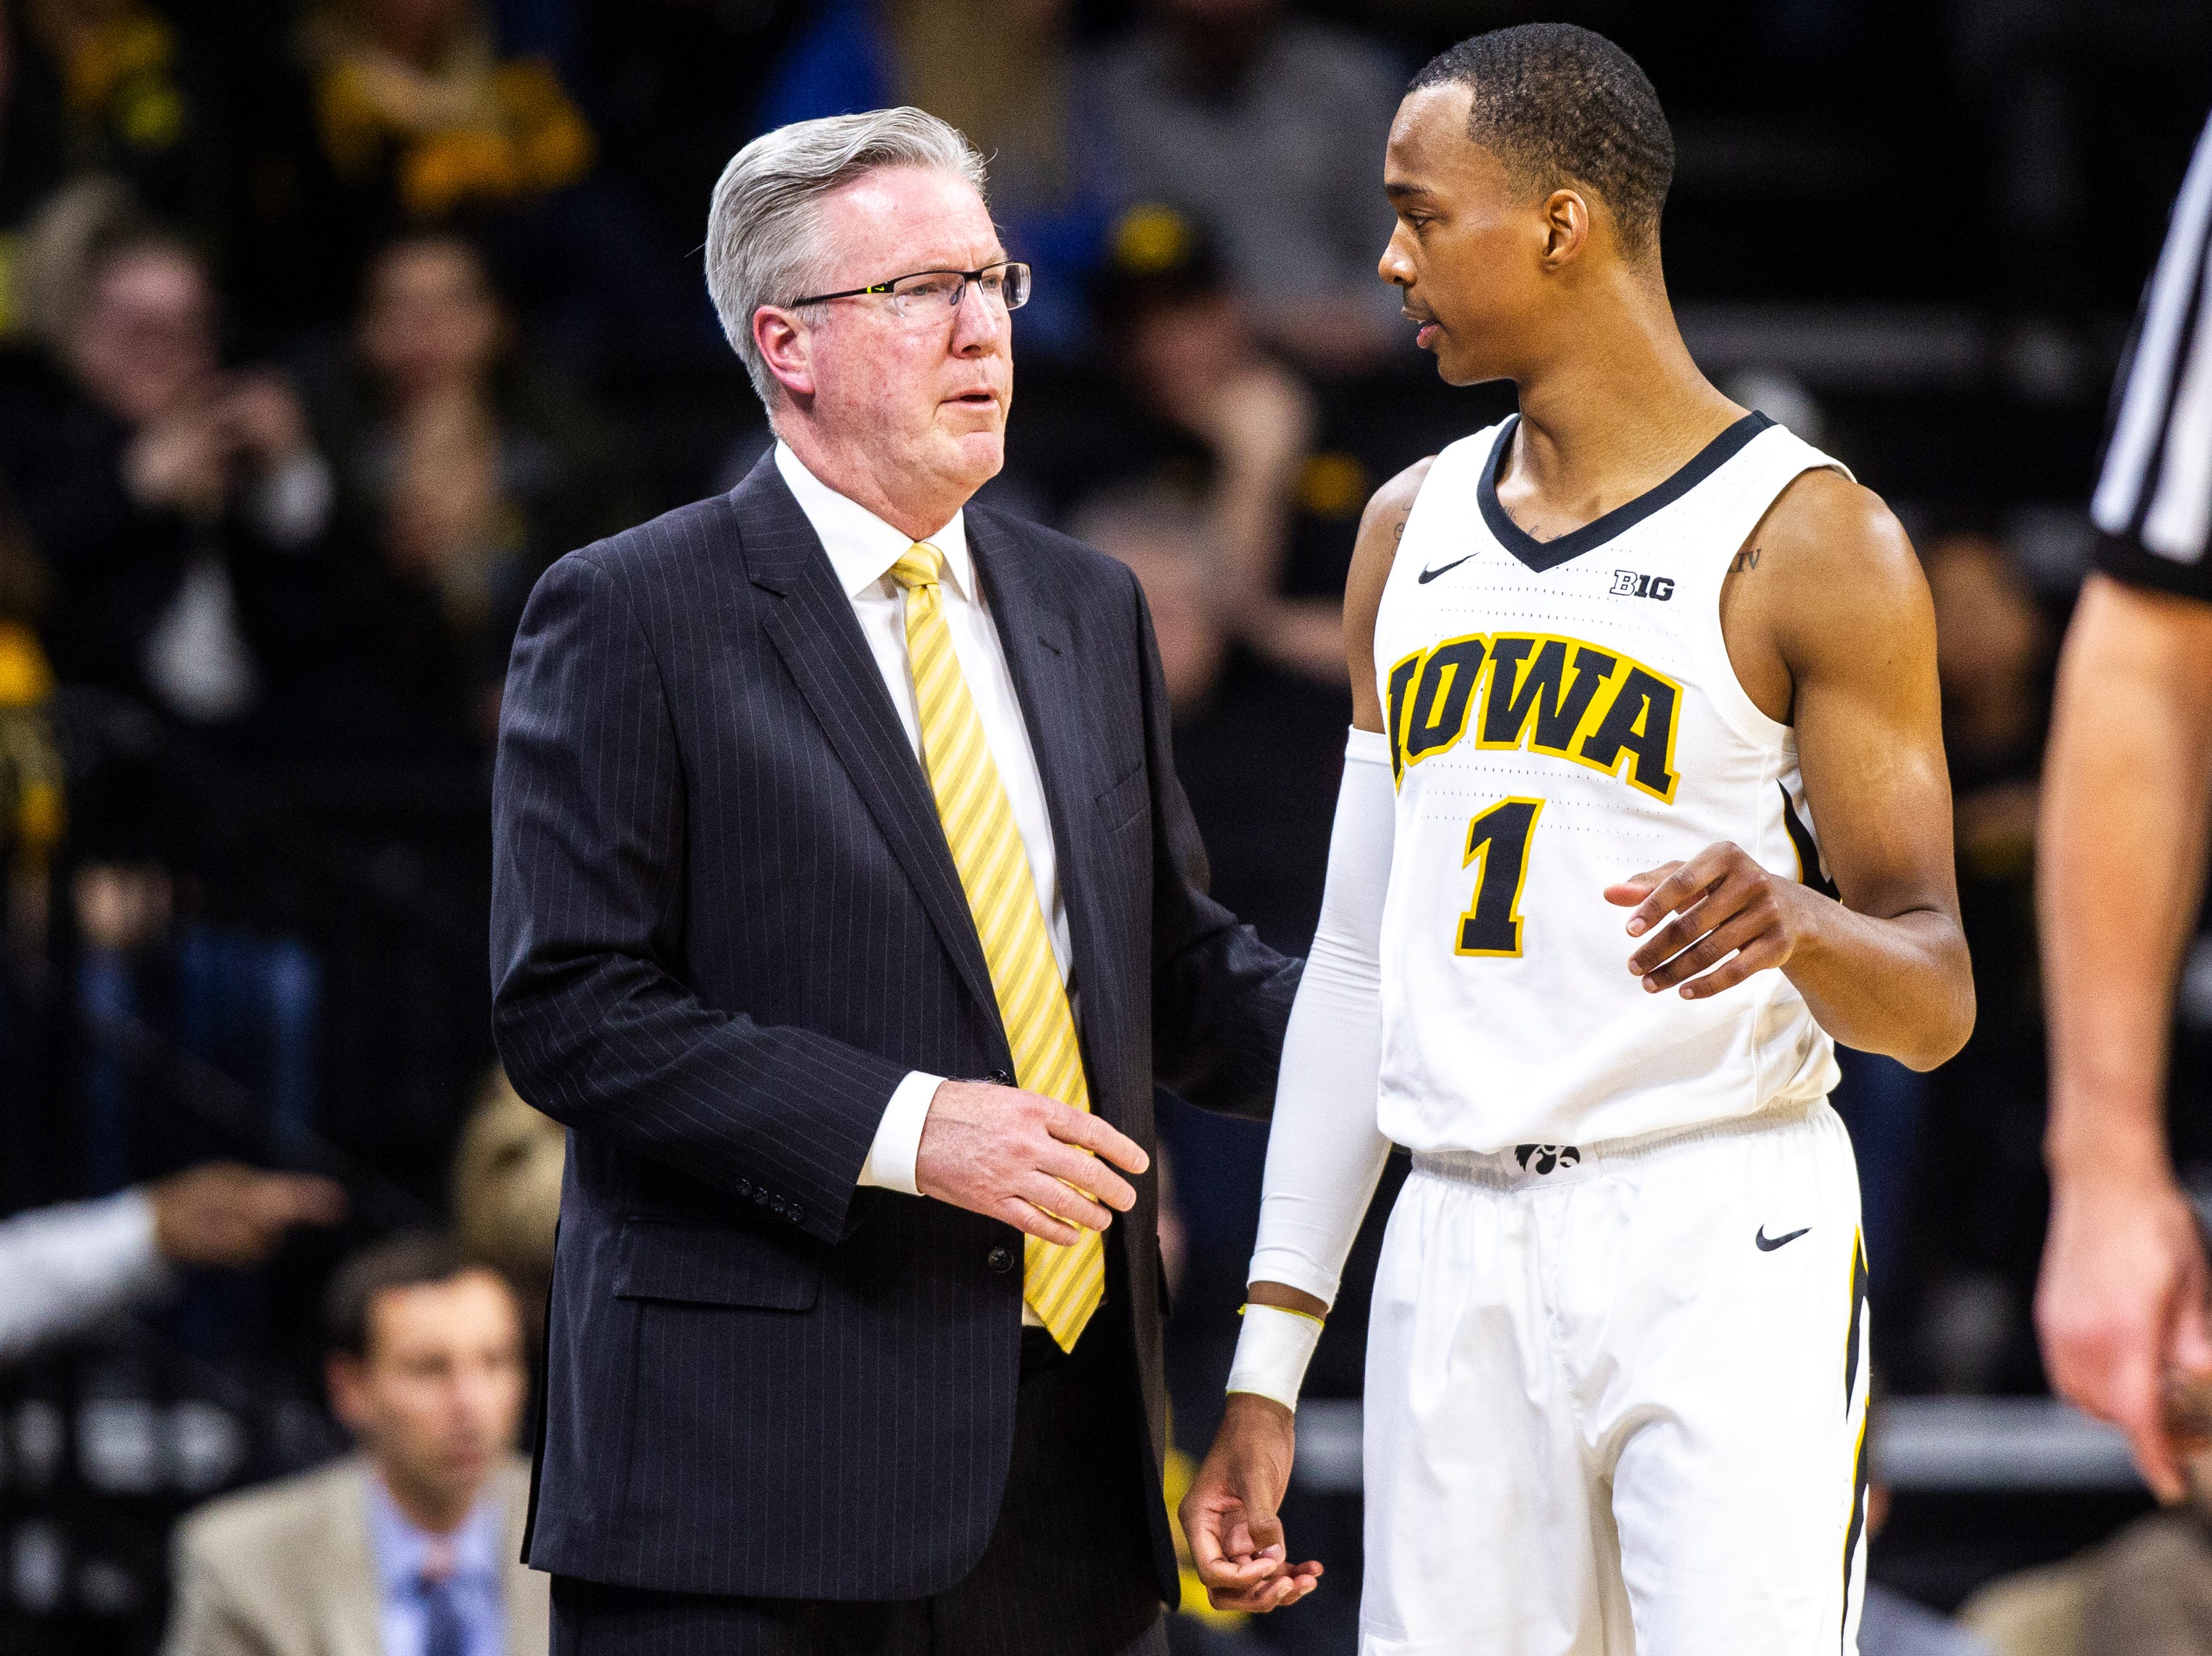 Iowa men's basketball head coach Fran McCaffery talks with Iowa guard Maishe Dailey (1) during a NCAA Big Ten Conference men's basketball game on Friday, Feb. 1, 2019, at Carver-Hawkeye Arena in Iowa City, Iowa.